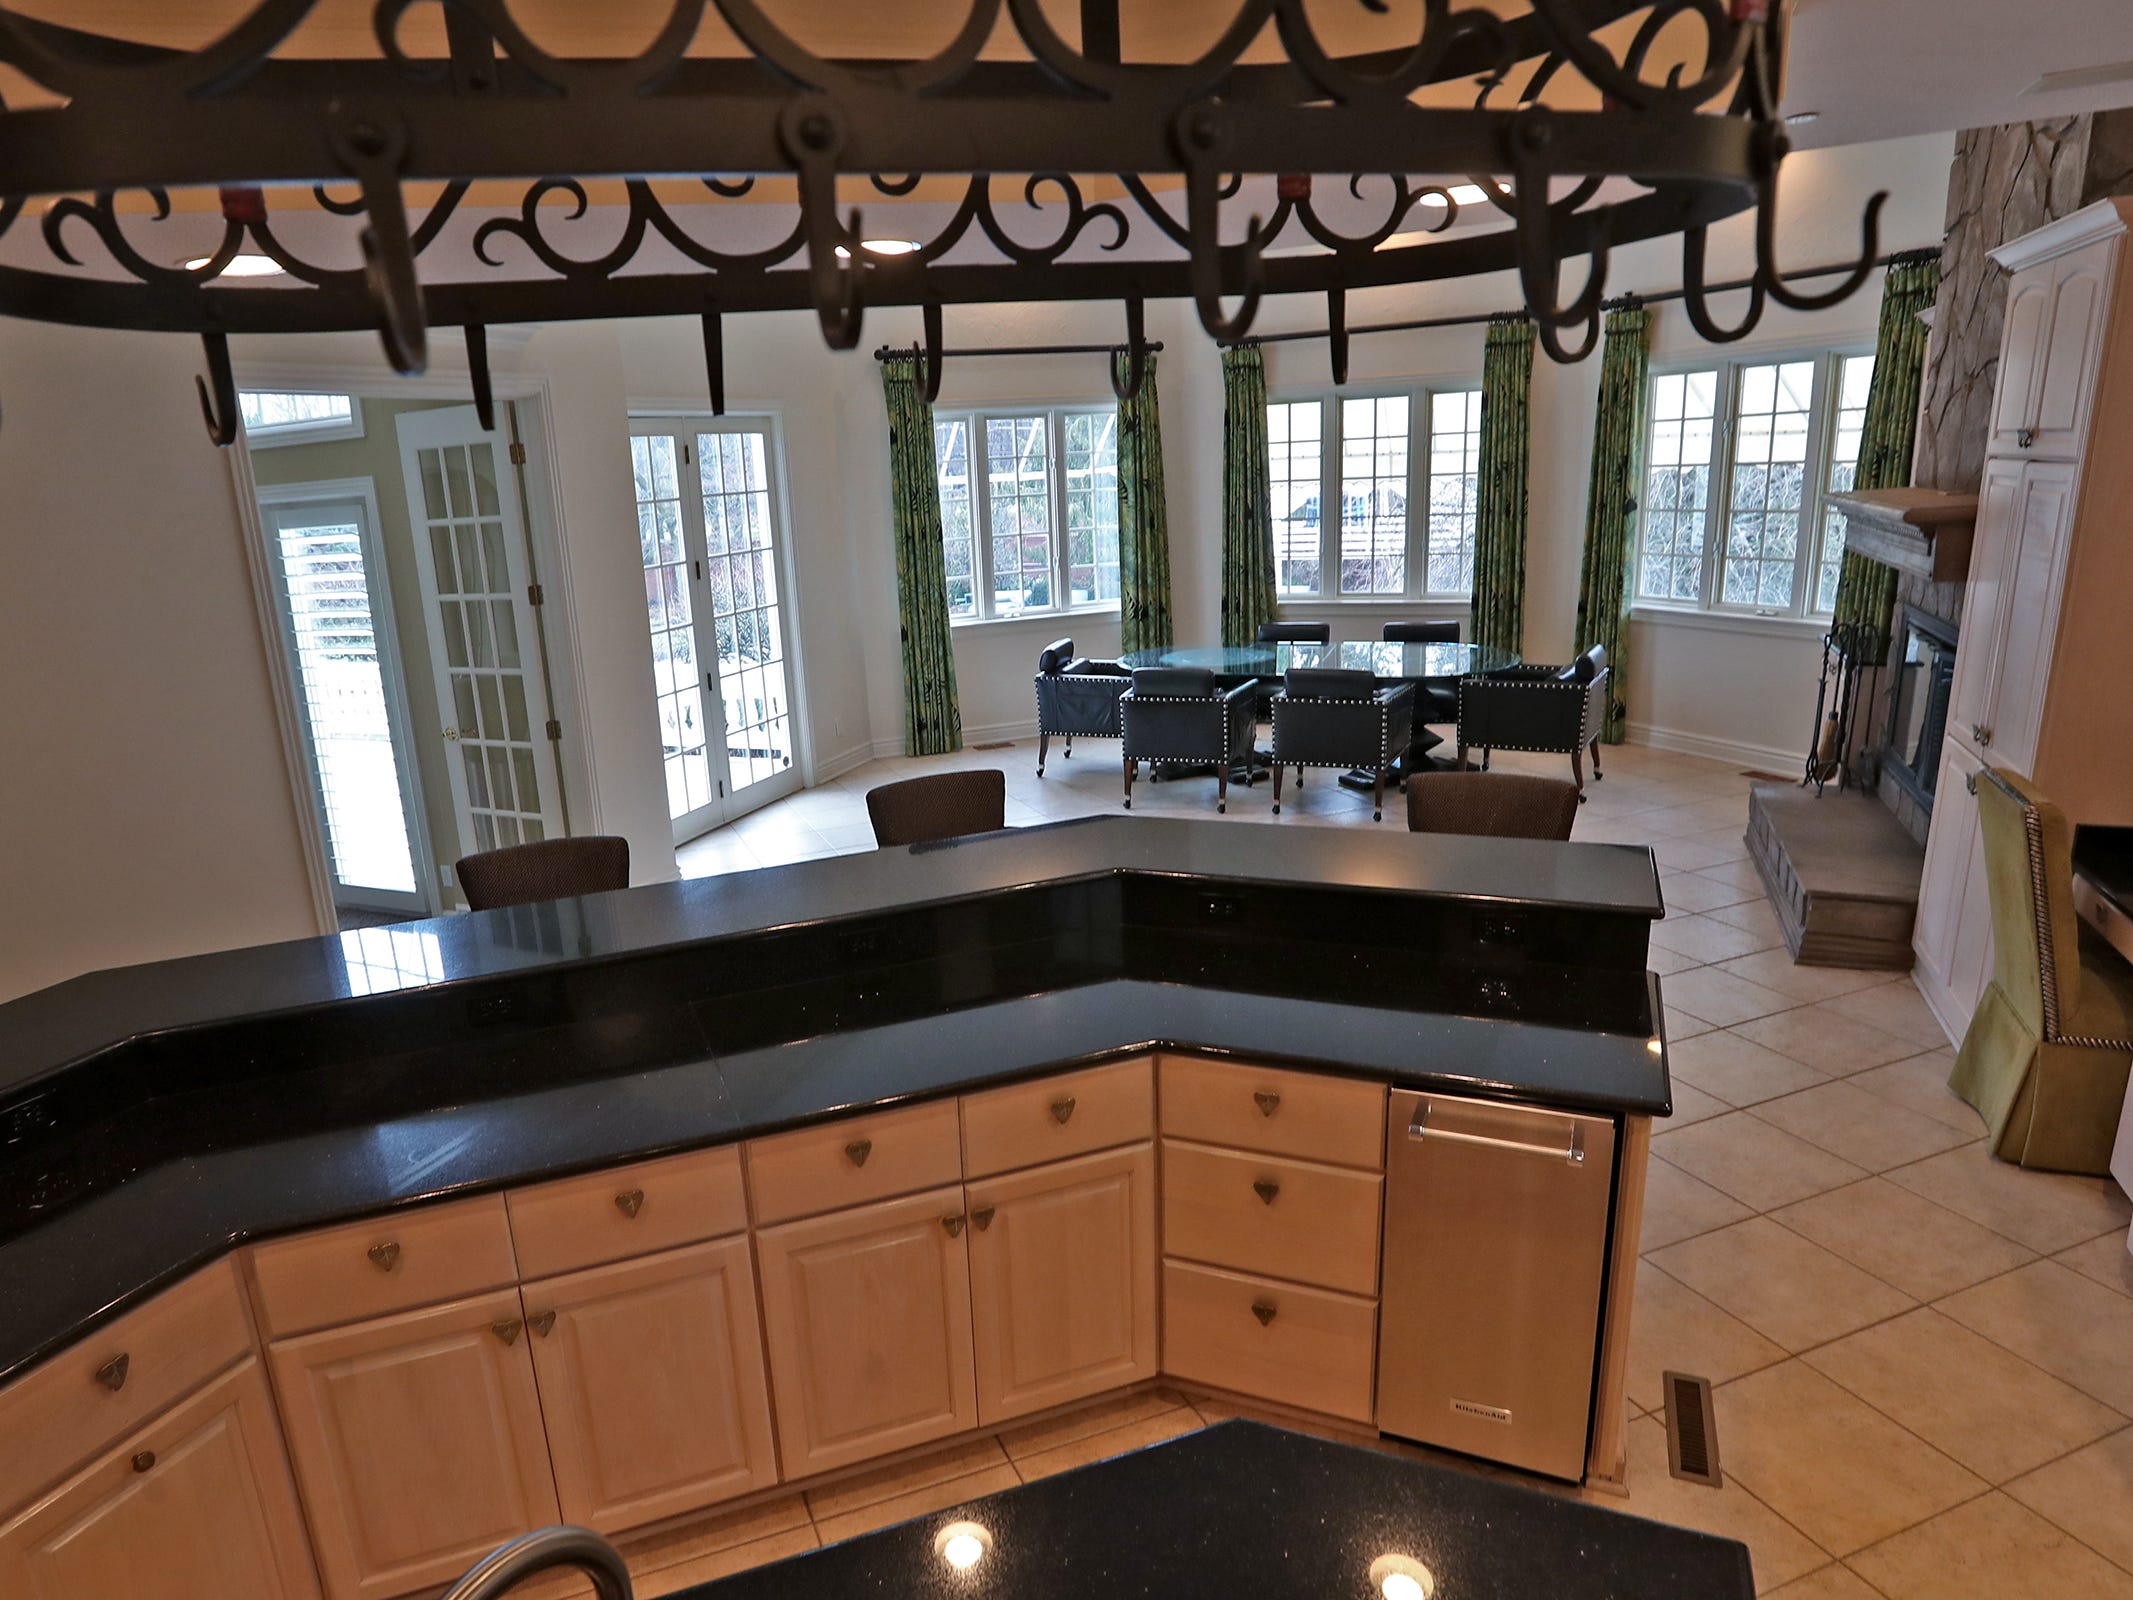 This is the kitchen with a dining area in the home at 1270 Laurelwood Ct. in Carmel, Friday, Dec. 28, 2018.